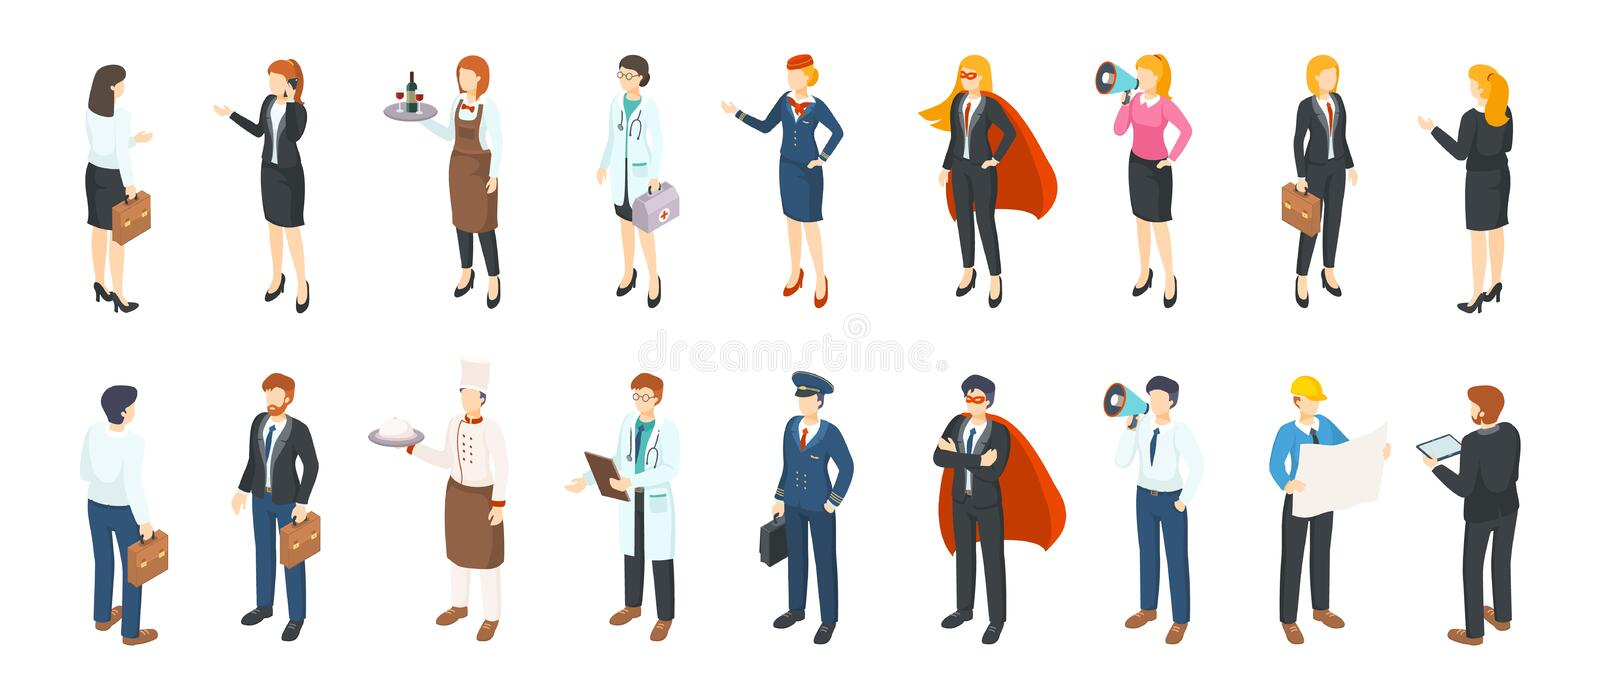 Isometric people professions. Men and women in different professional suits and uniforms, flat office characters. Vector vector illustration